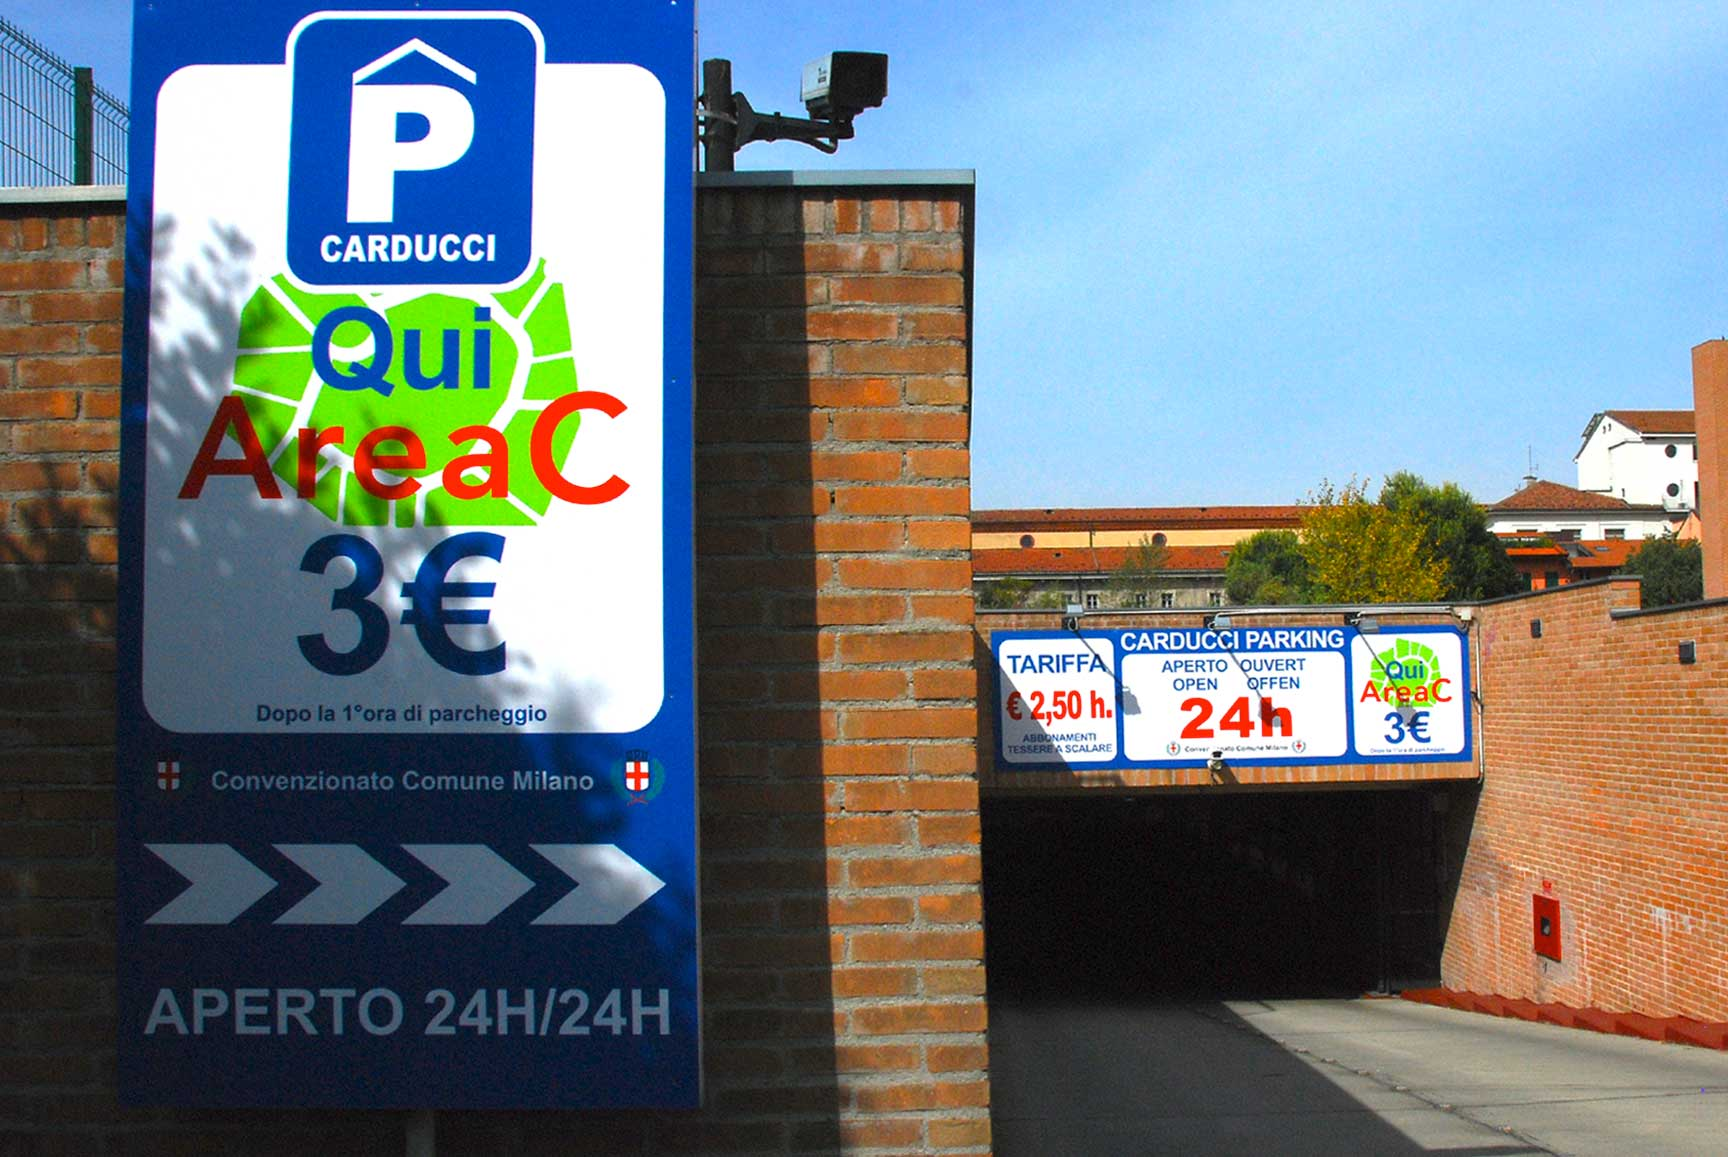 <h1><b>Carducci Parking</b> </h1>